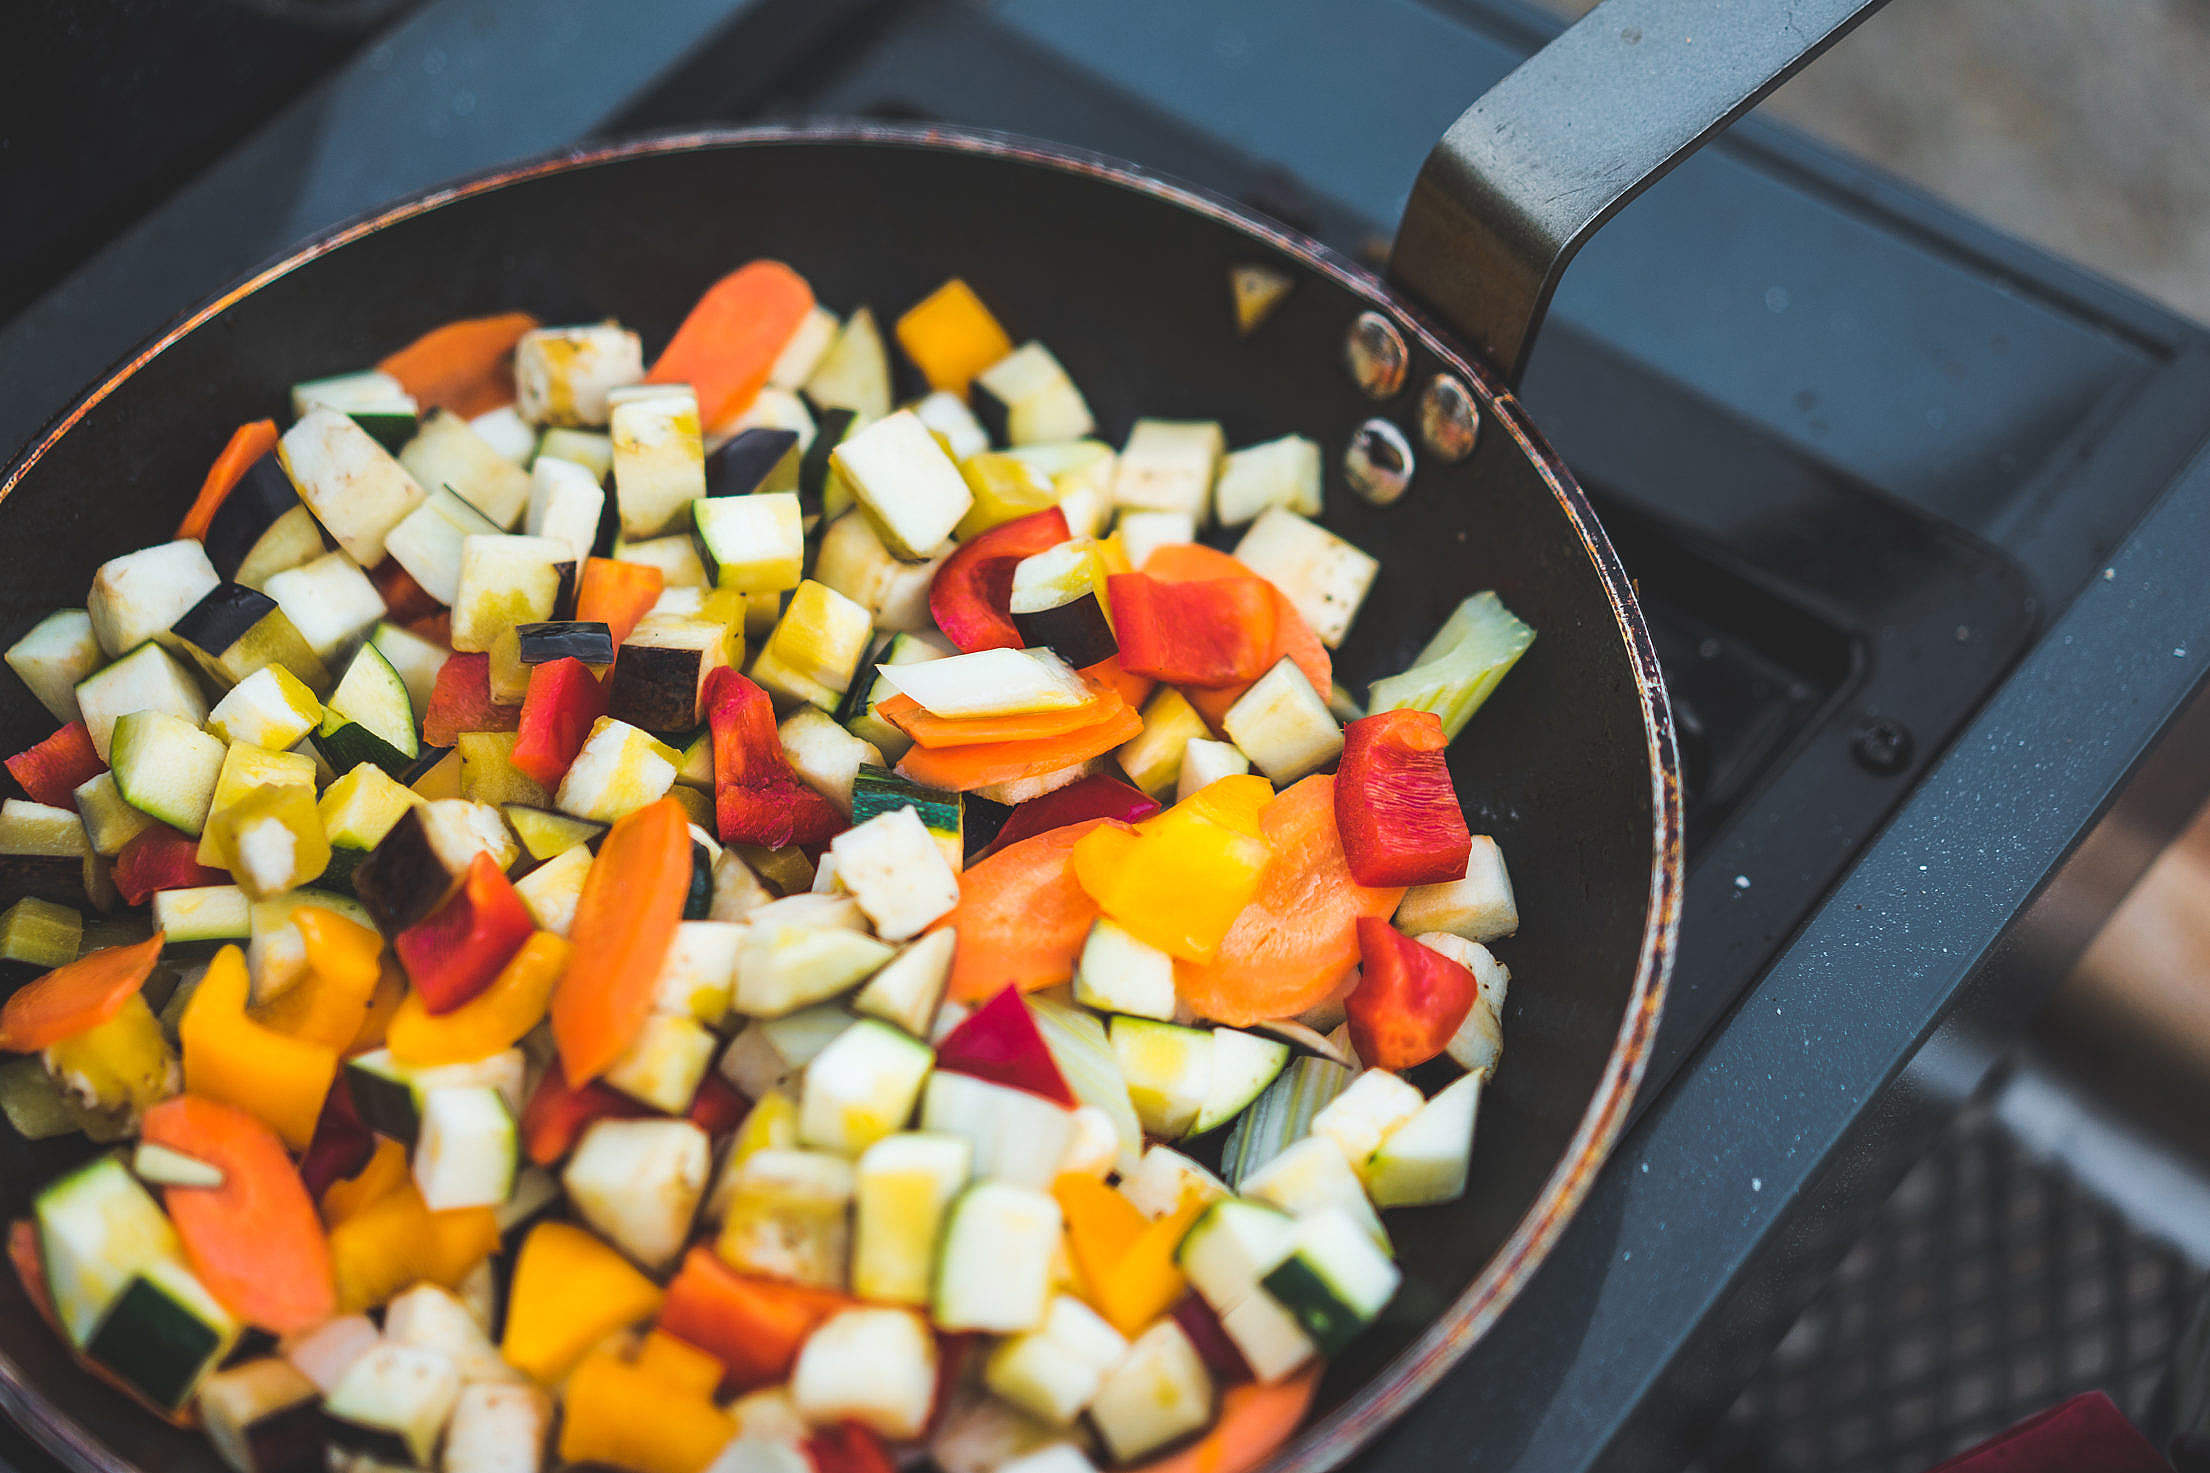 Vegetables on a Pan Free Stock Photo